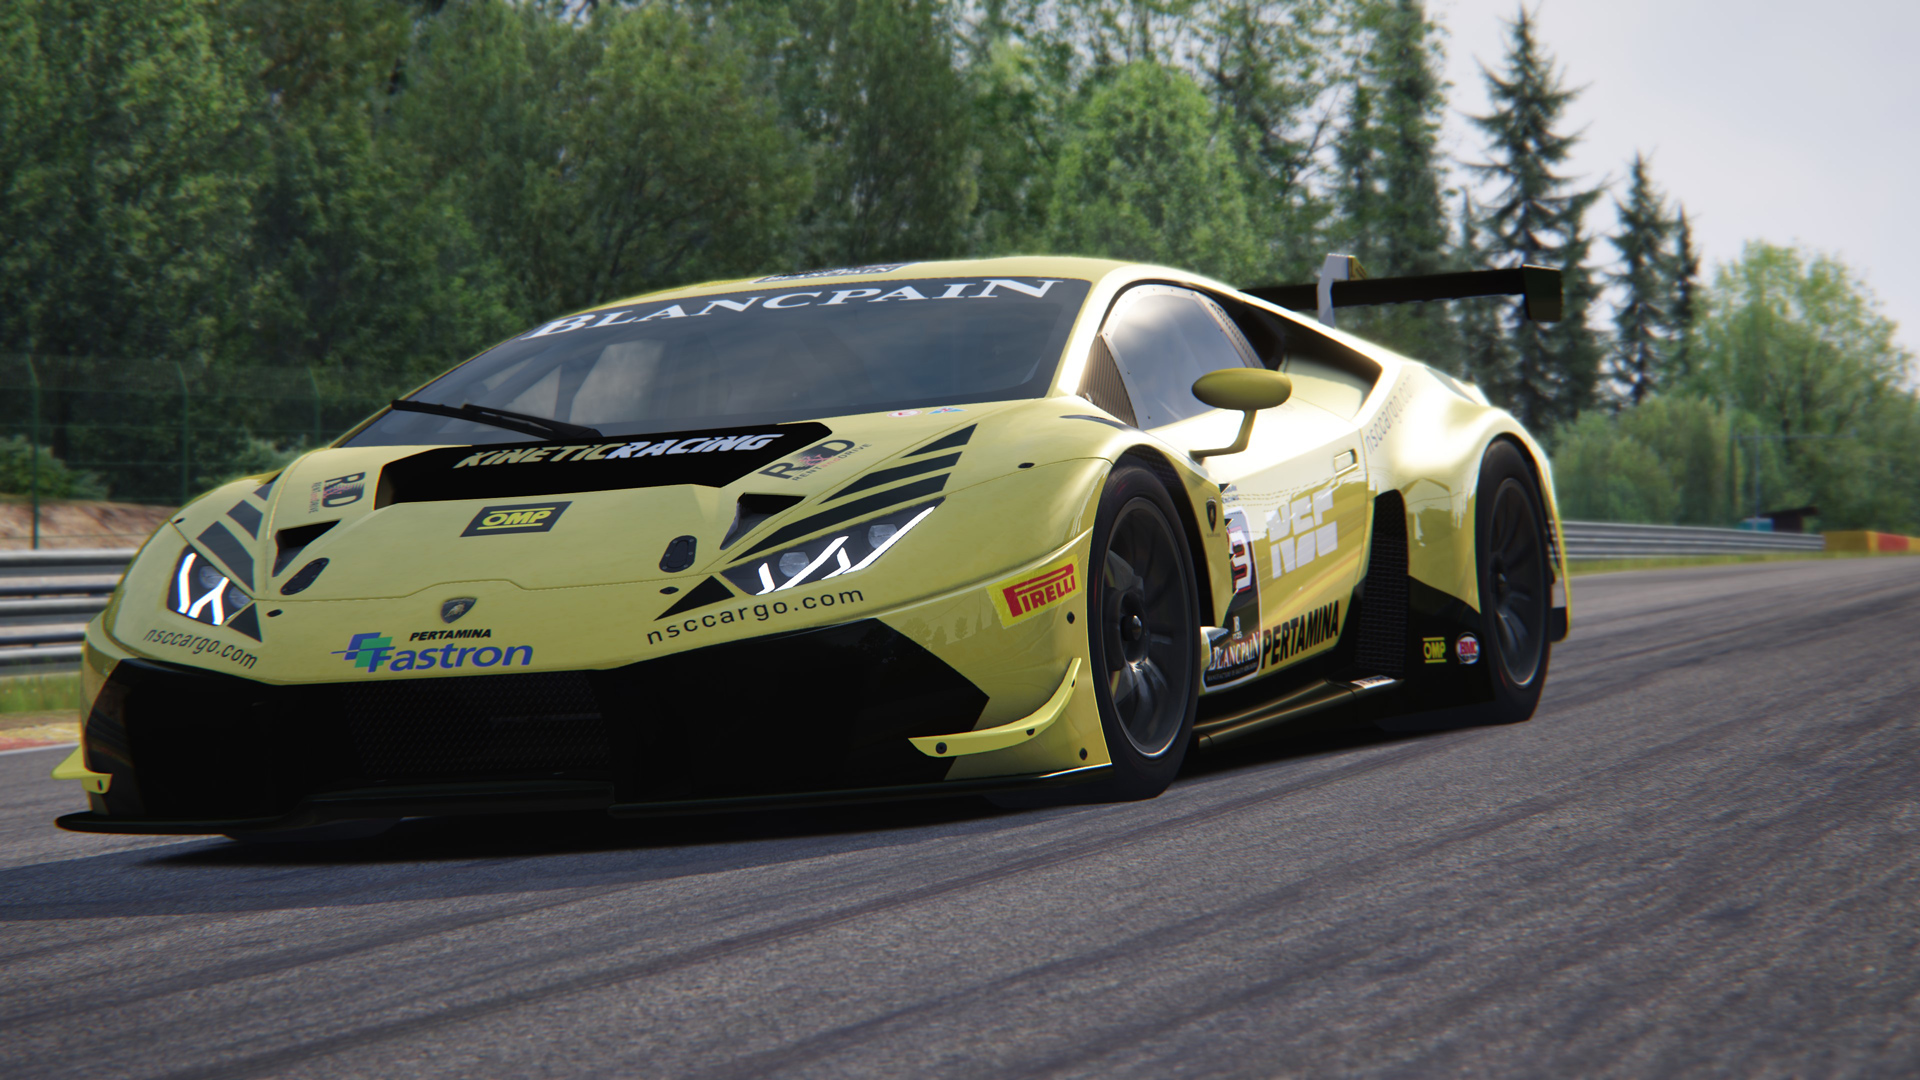 Screenshot_ks_lamborghini_huracan_gt3_spa_6-11-115-20-25-10.jpg